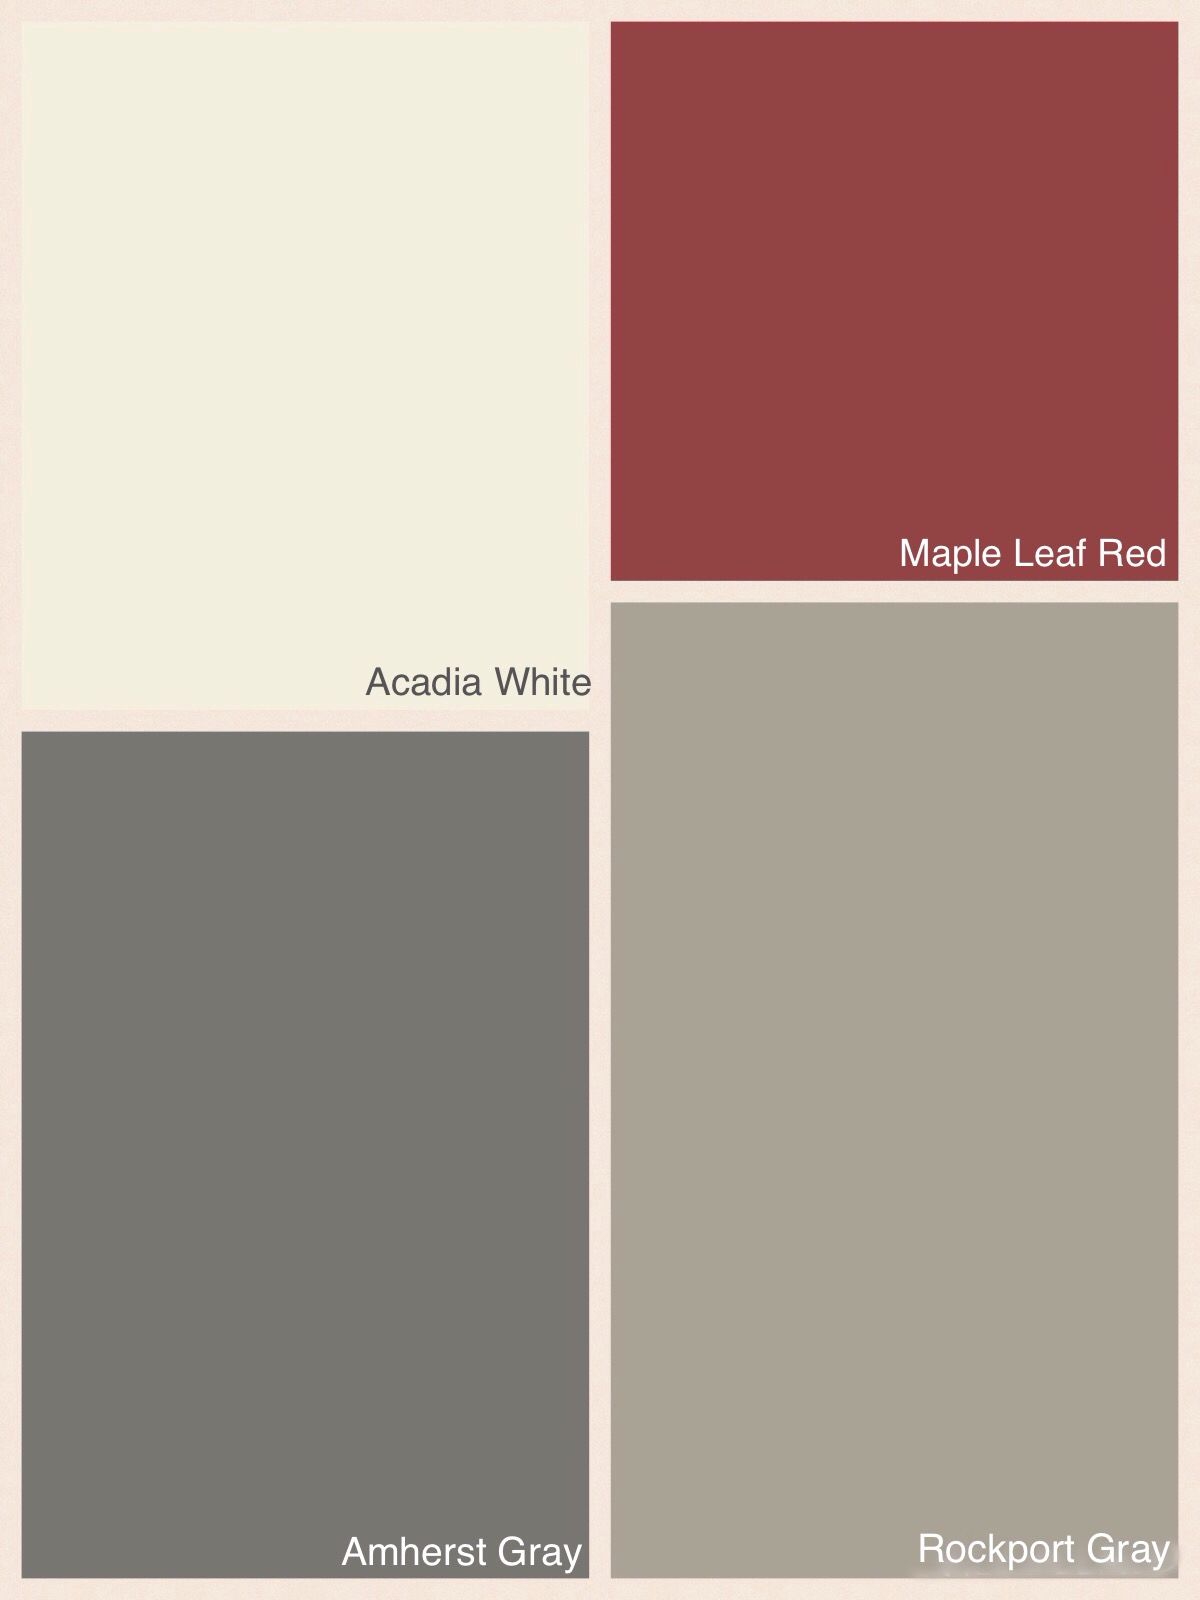 Benjamin Moore Colours For Exterior Of House Main Colour